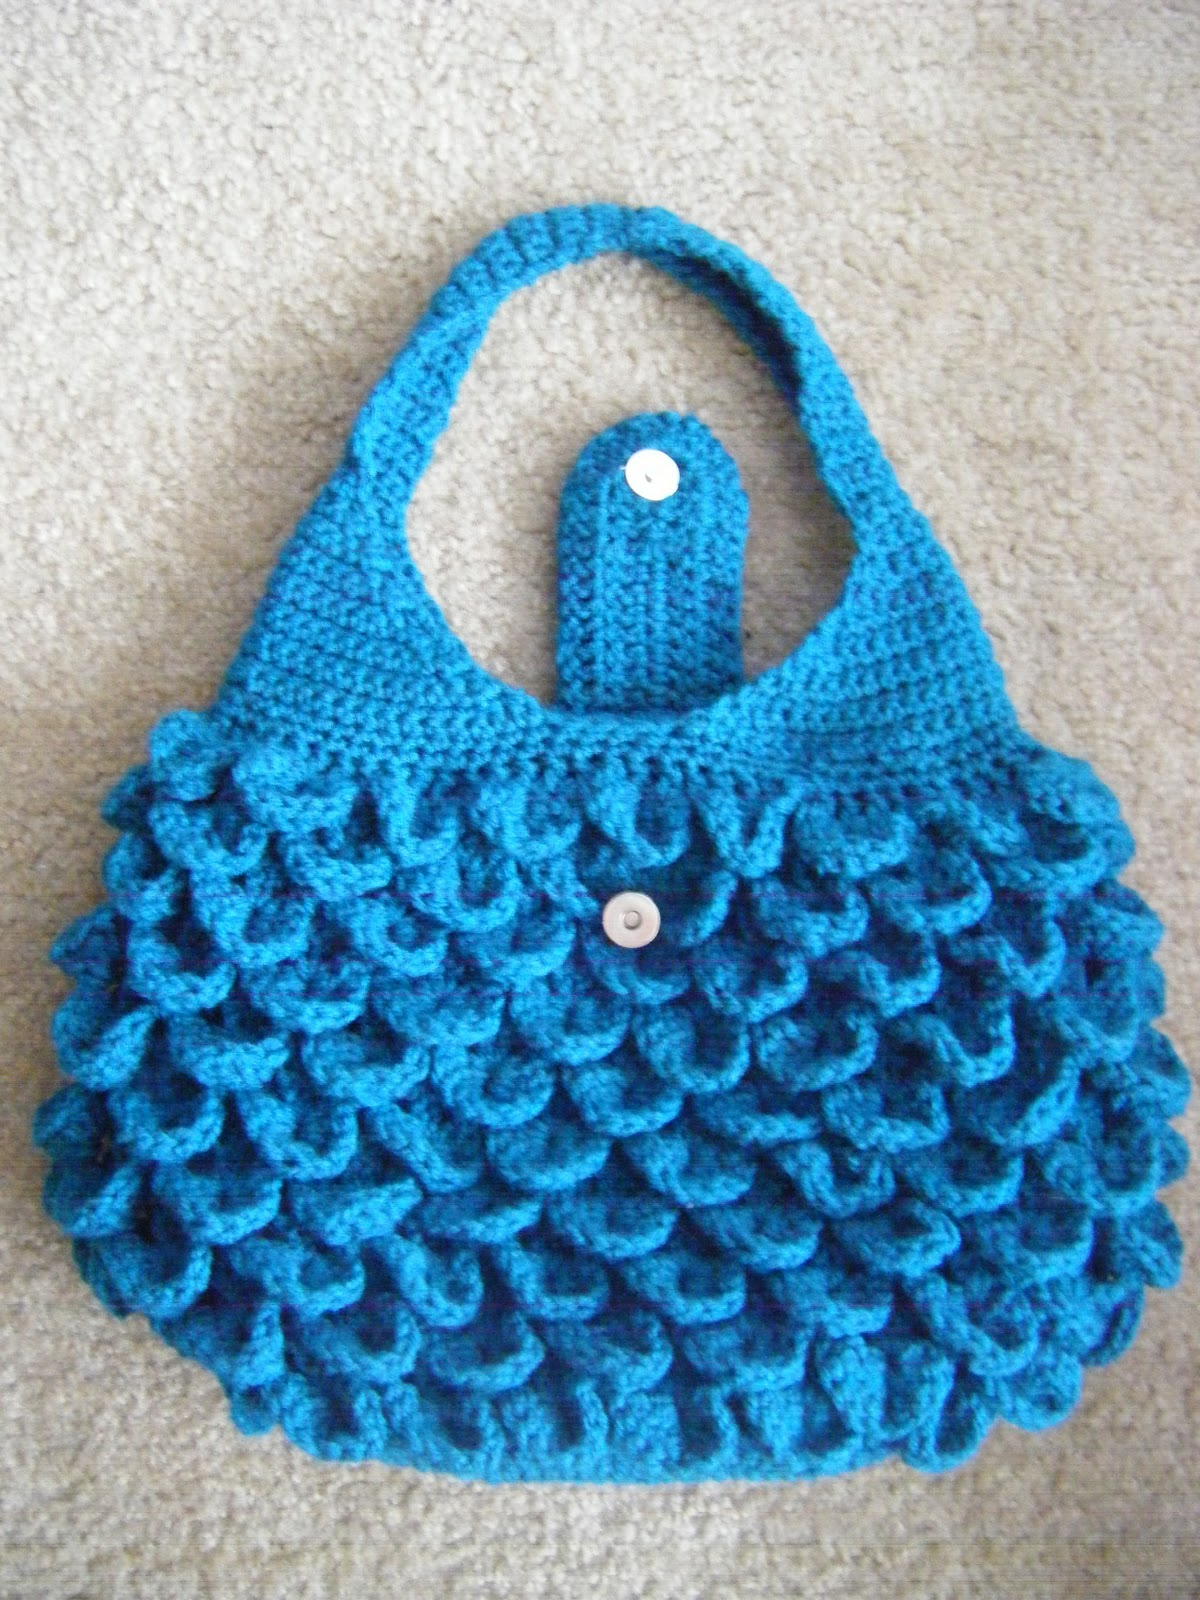 Crochet Patterns For Bags : Best Patterns: Crocodile Crochet Bag PATTERN